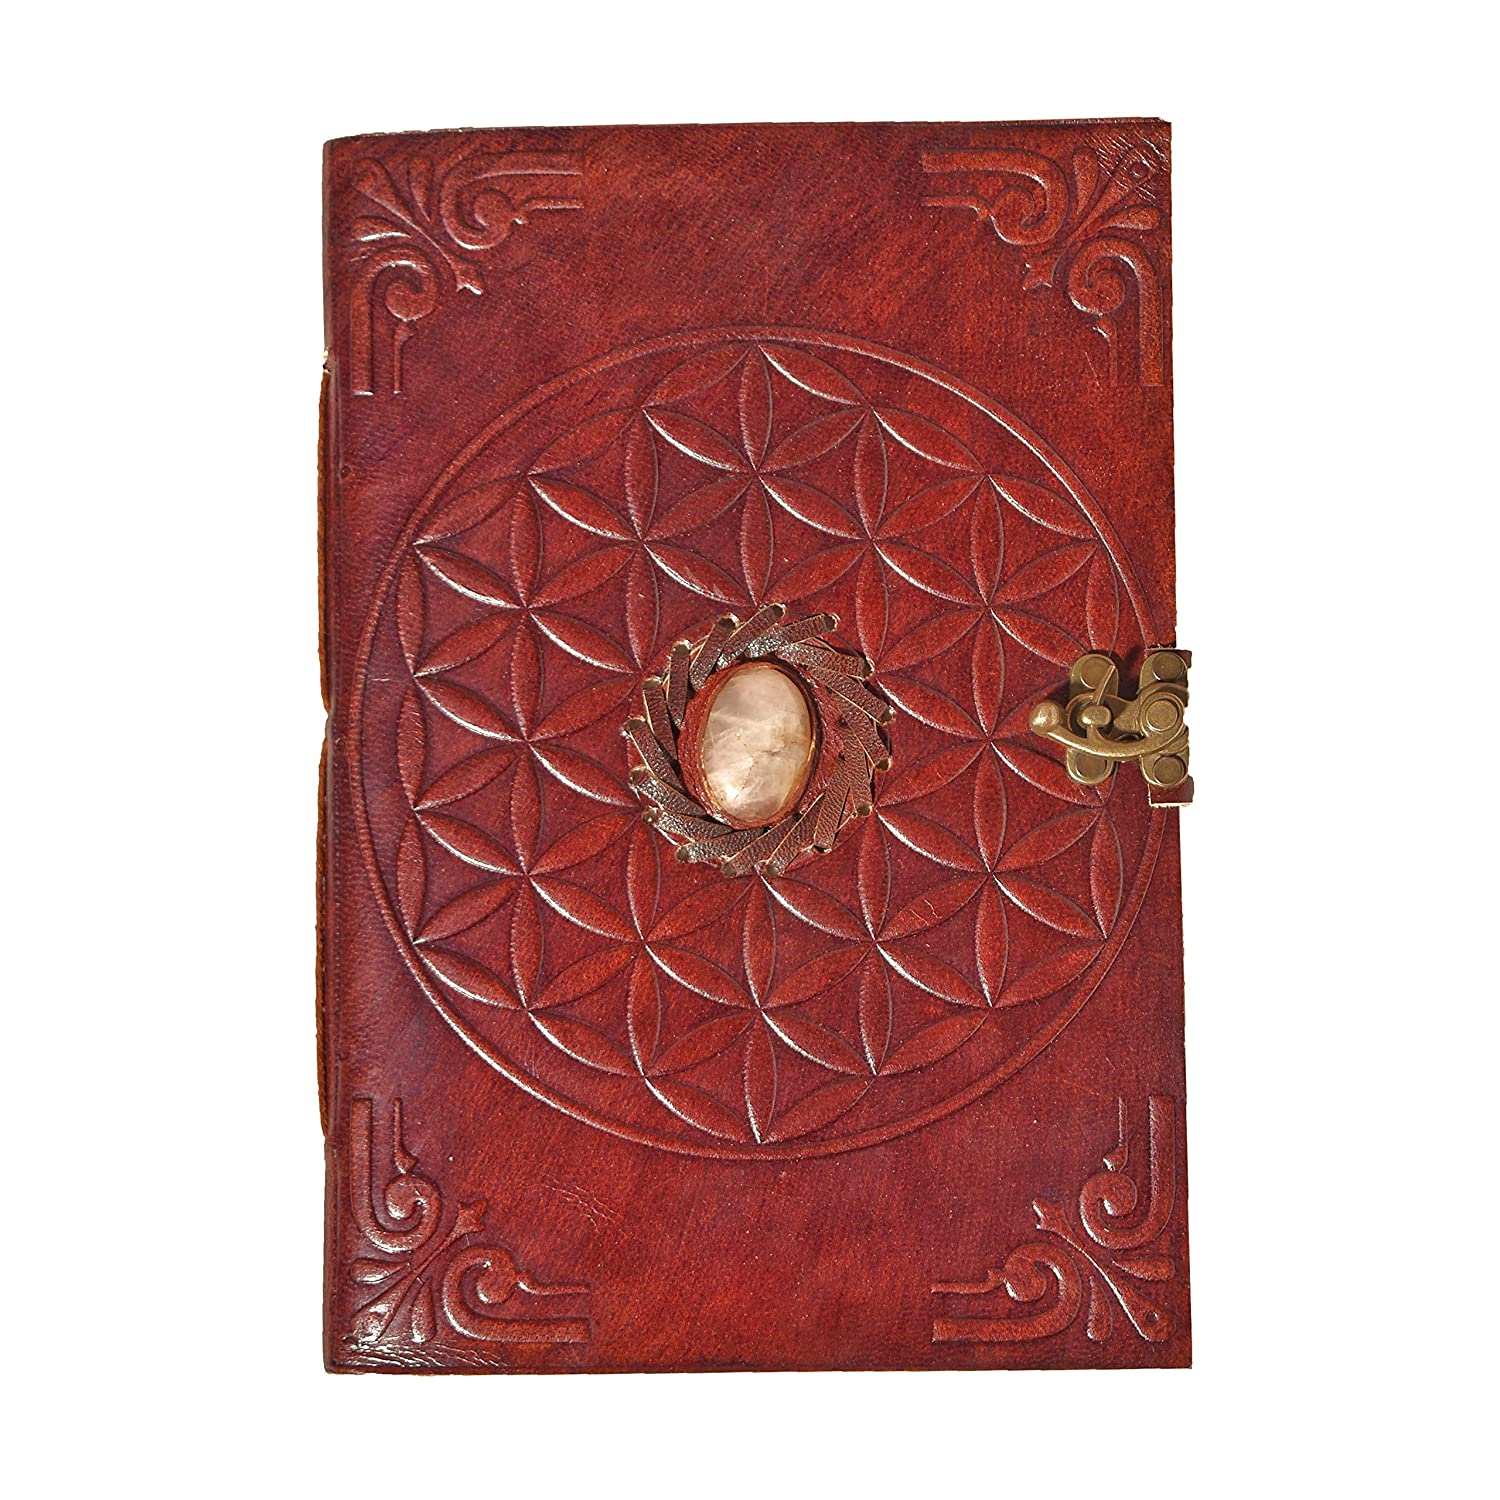 Leather Stone Brown Embossed Handmade Diary With Metal Lock A- 4